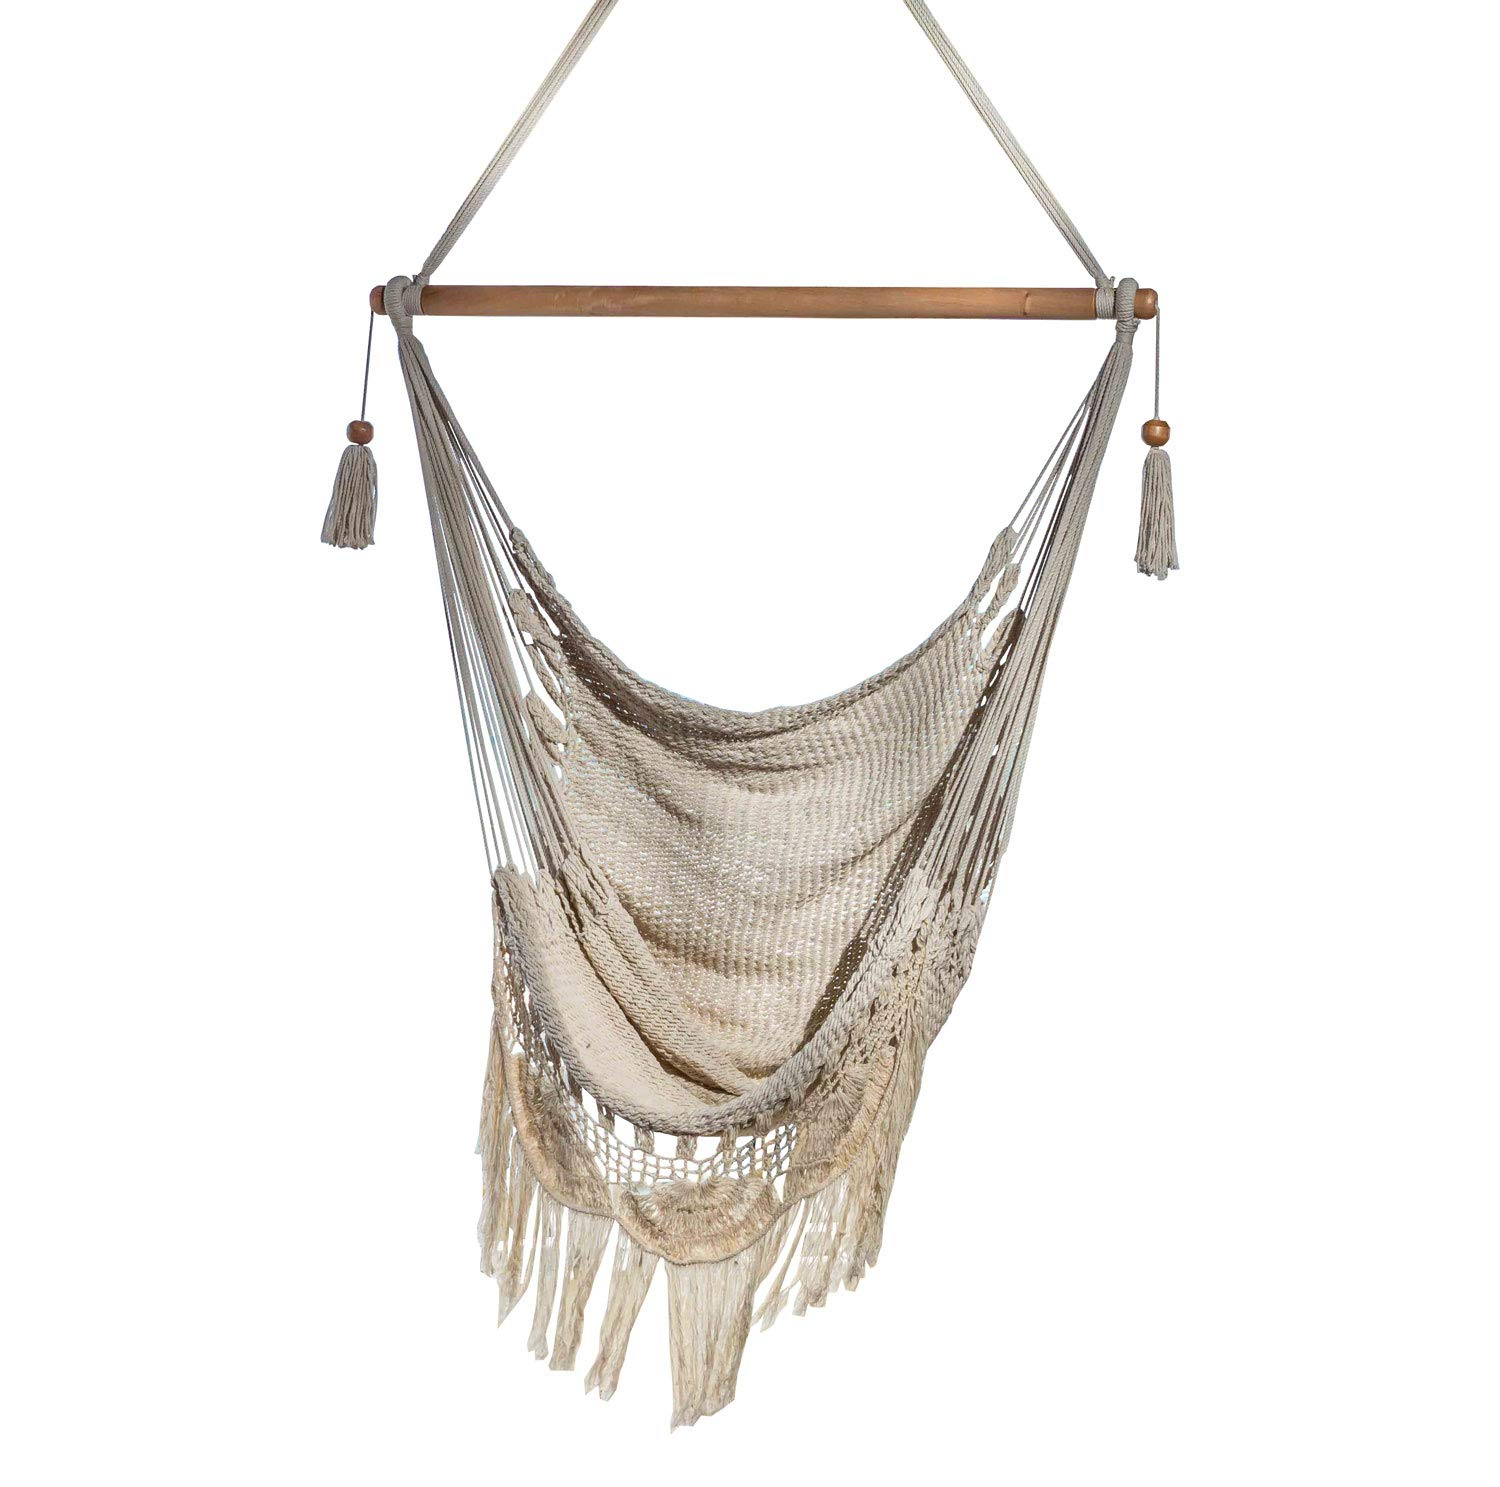 Handmade Hanging Rope Hammock Chair - All Natural Indoor or Outdoor Porch Swing Patio Swing Chair (Off-White)